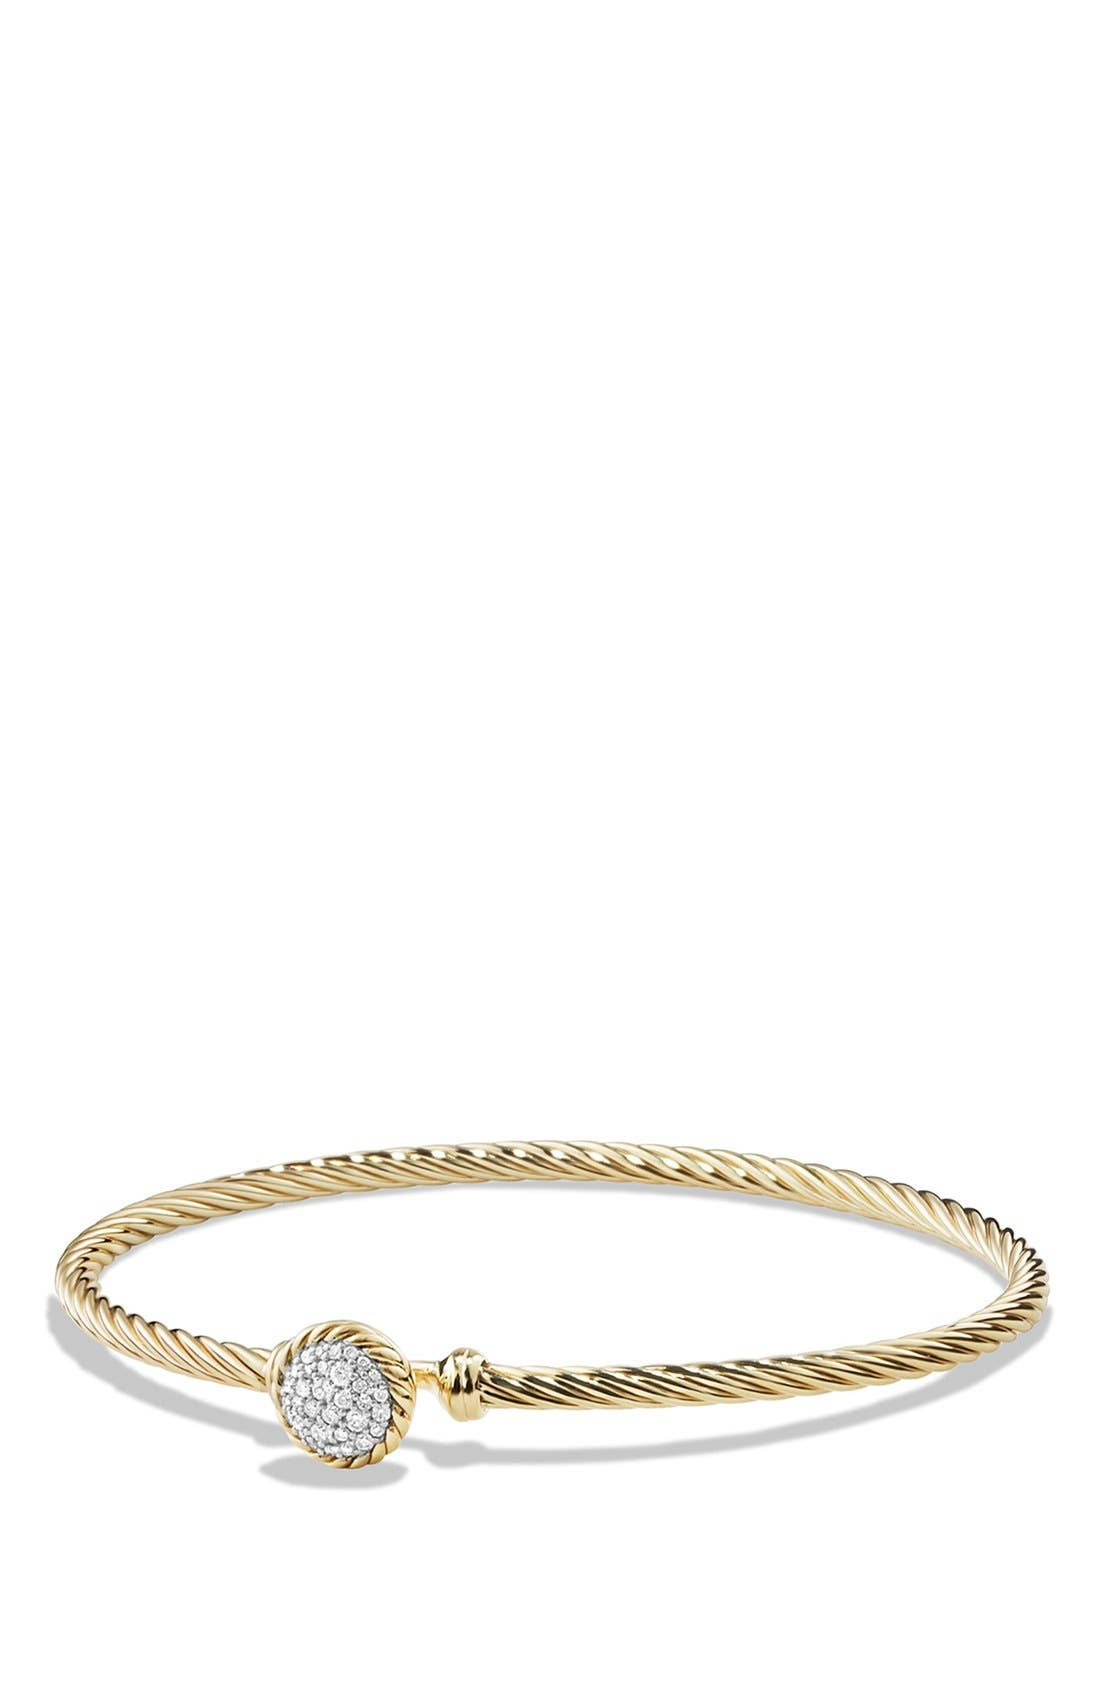 DAVID YURMAN 'Châtelaine' Bracelet with Diamonds in 18K